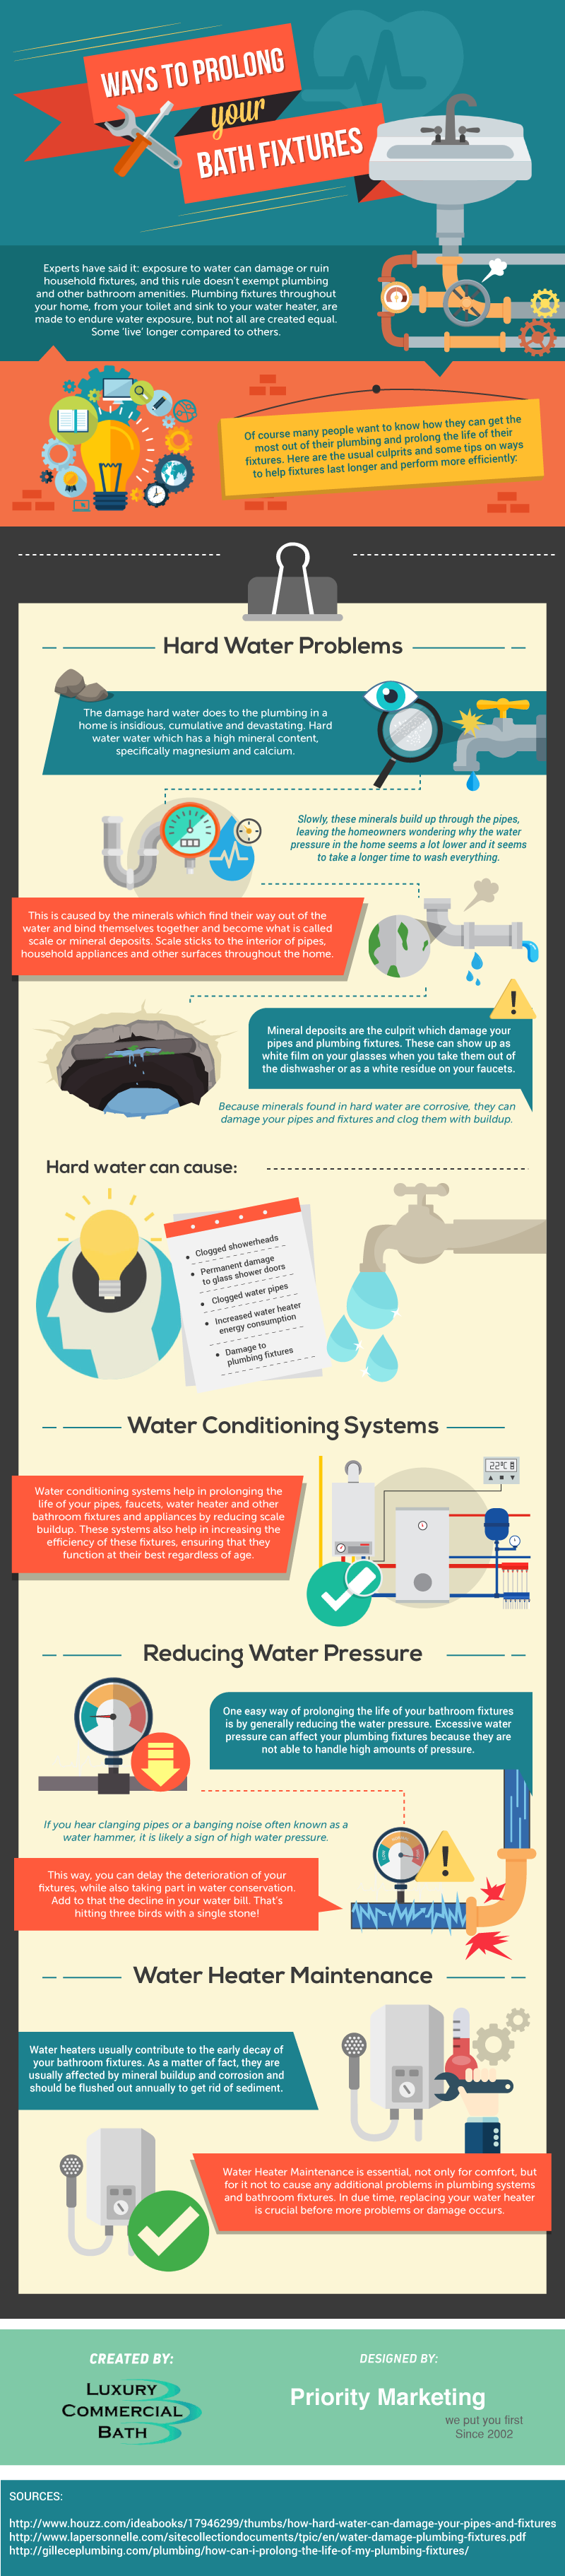 How To Make The Life-Span Of Your Bath Fixtures Longer – Infographic